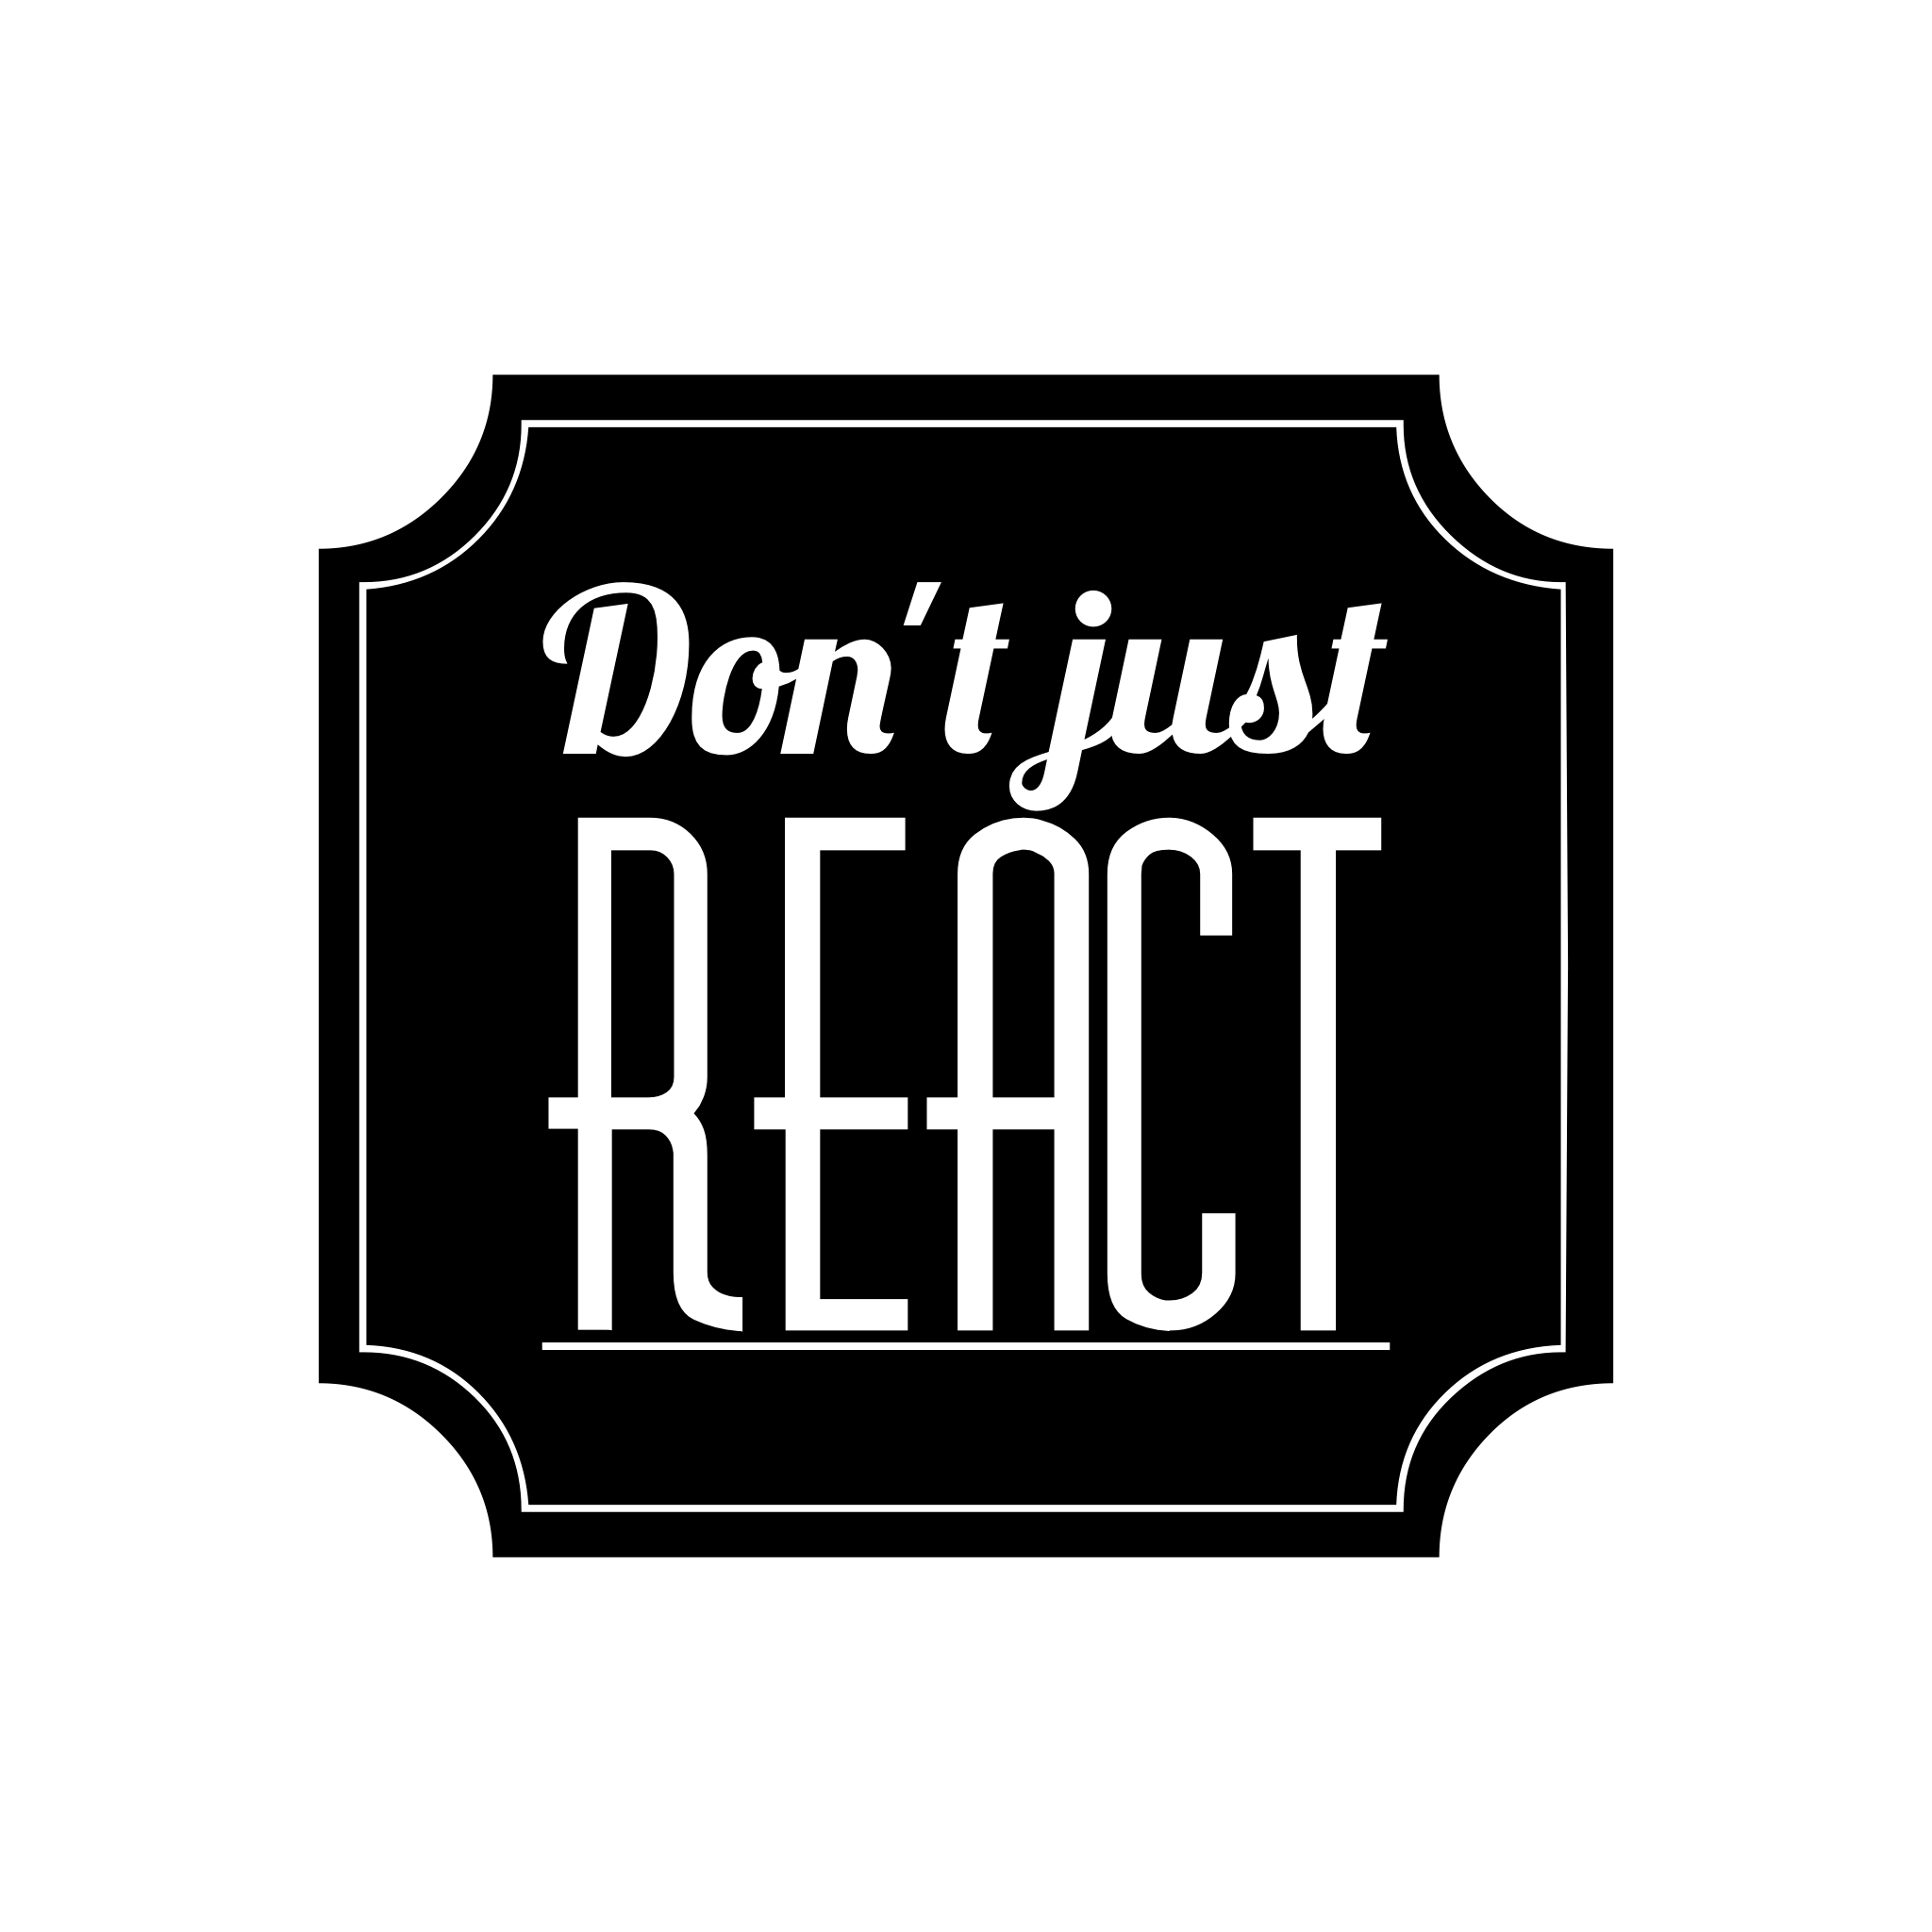 Don't just react